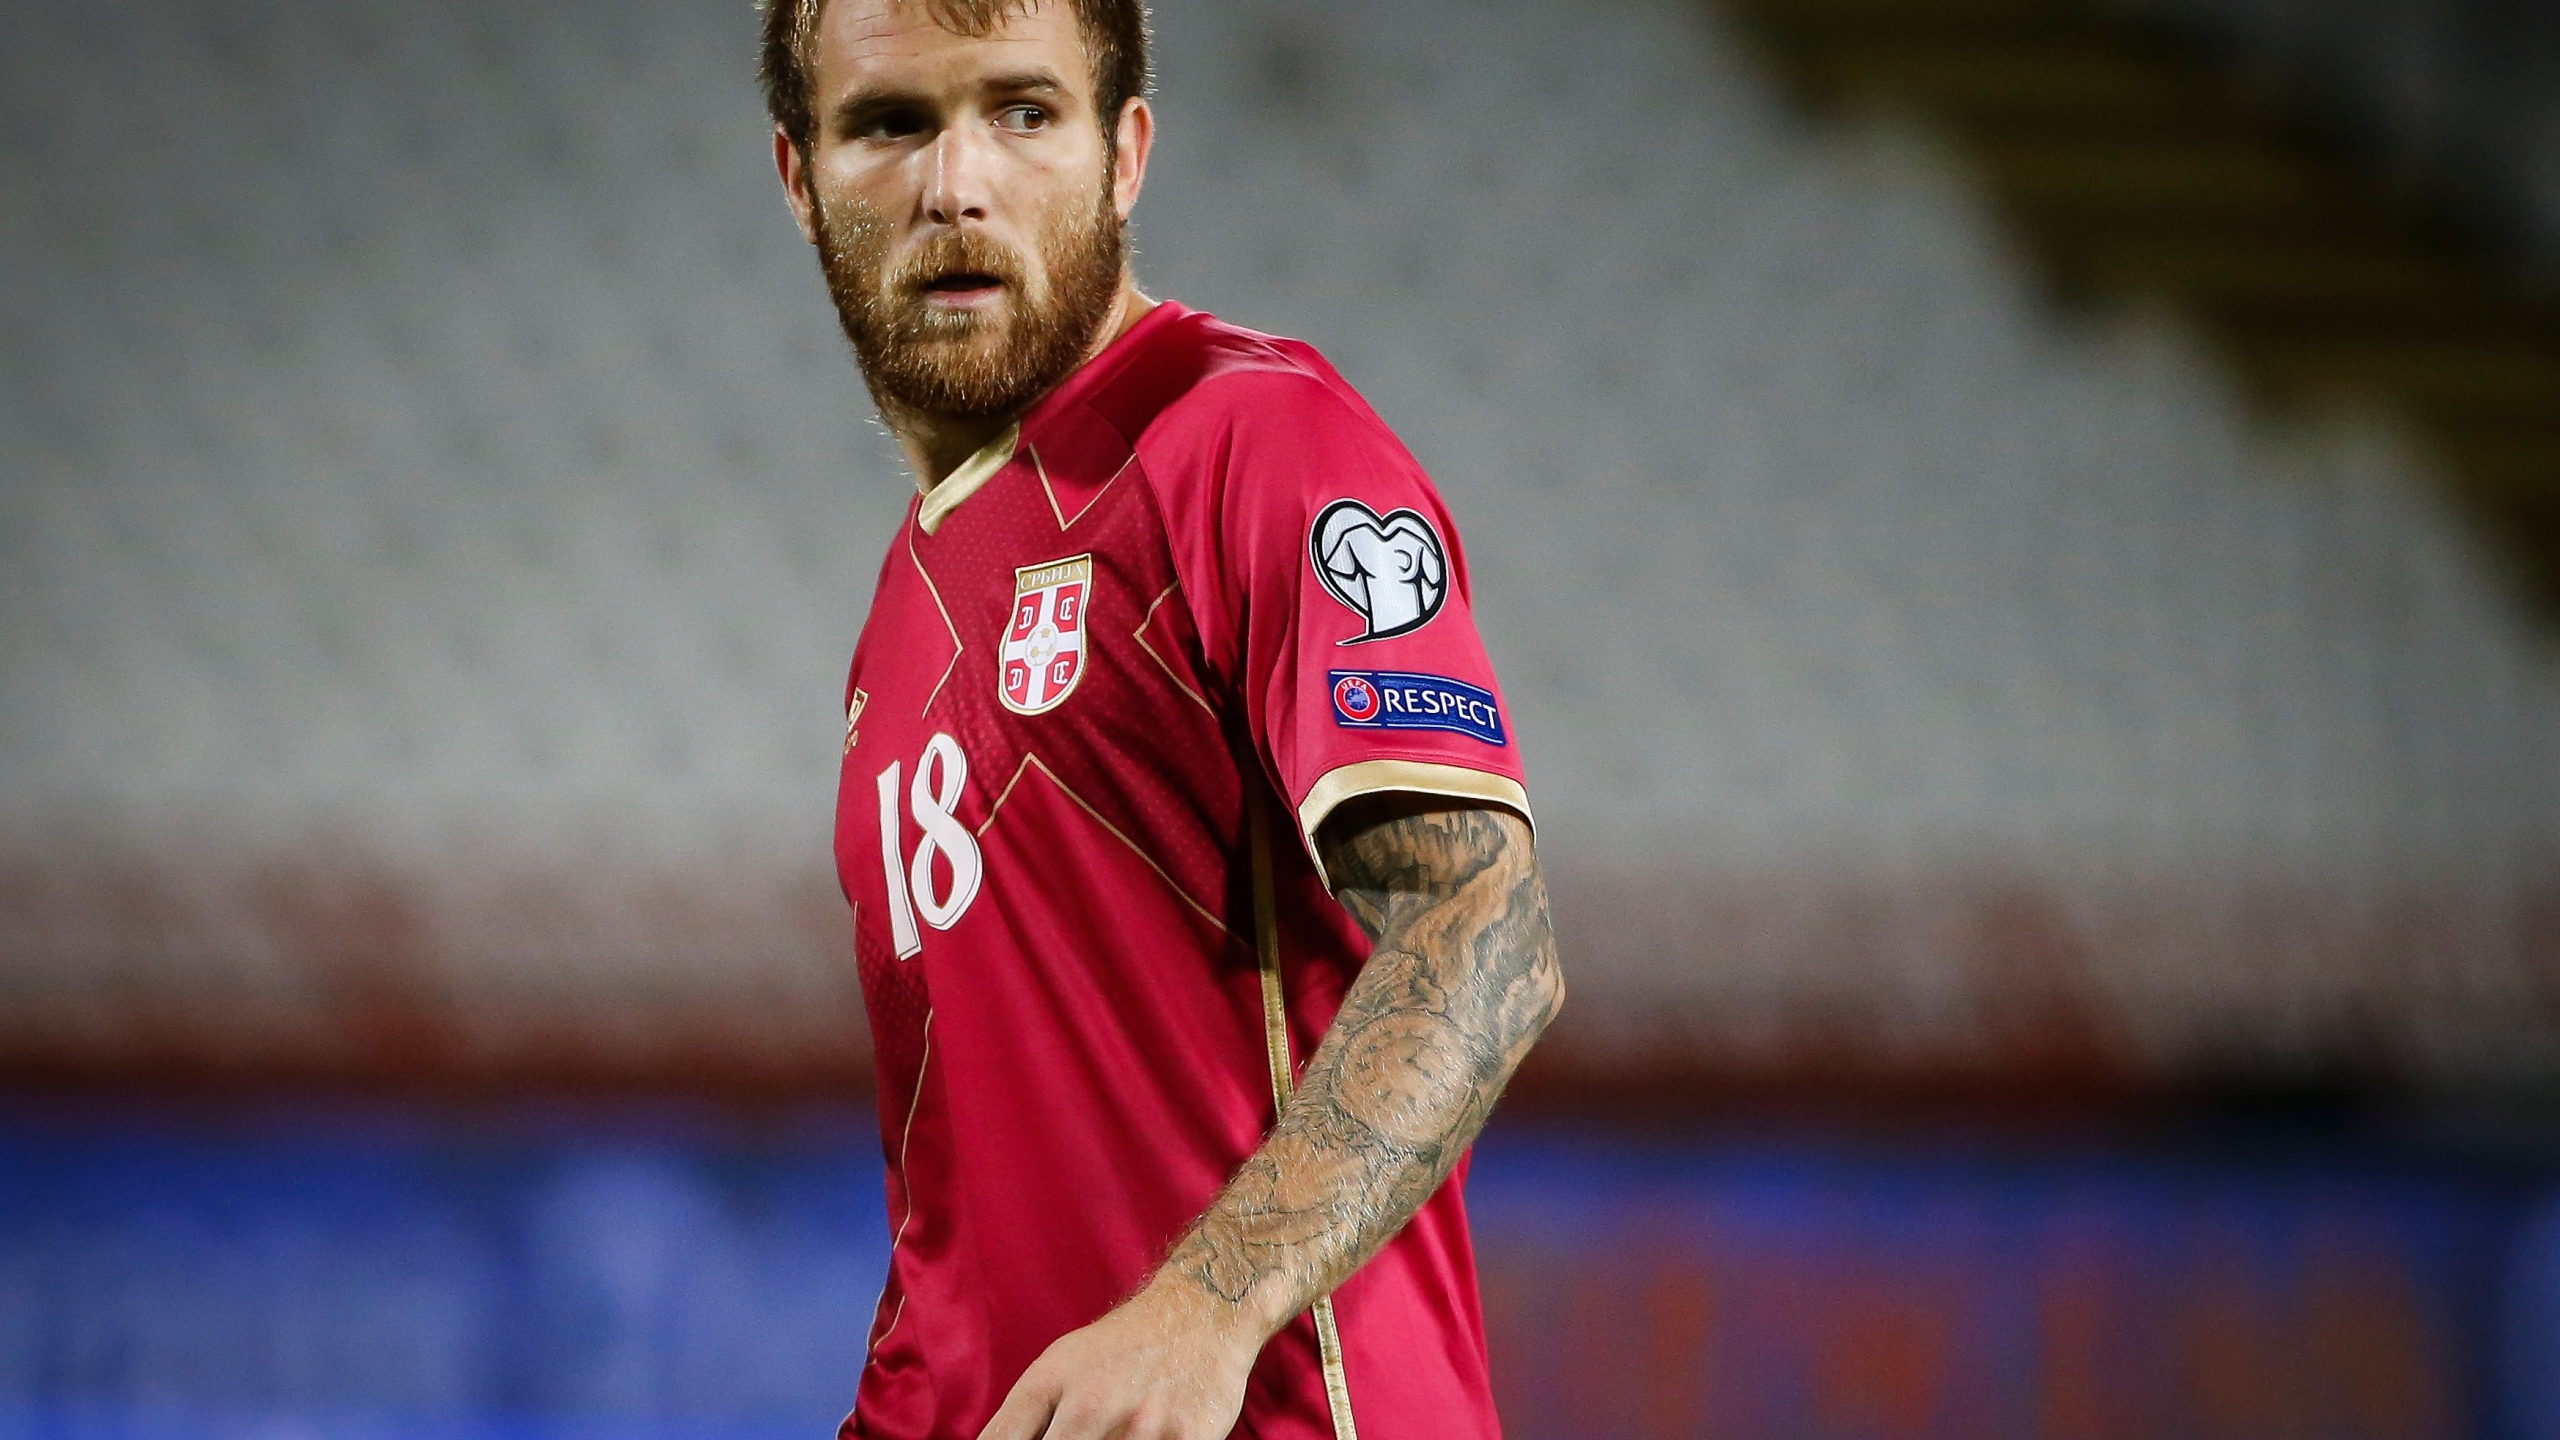 Aleksandar Katai of Serbia looks on during the FIFA 2018 World Cup Qualifier between Serbia and Ireland at stadium Rajko Mitic on Sept. 5, 2016 in Belgrade. (Srdjan Stevanovic/Getty Images)